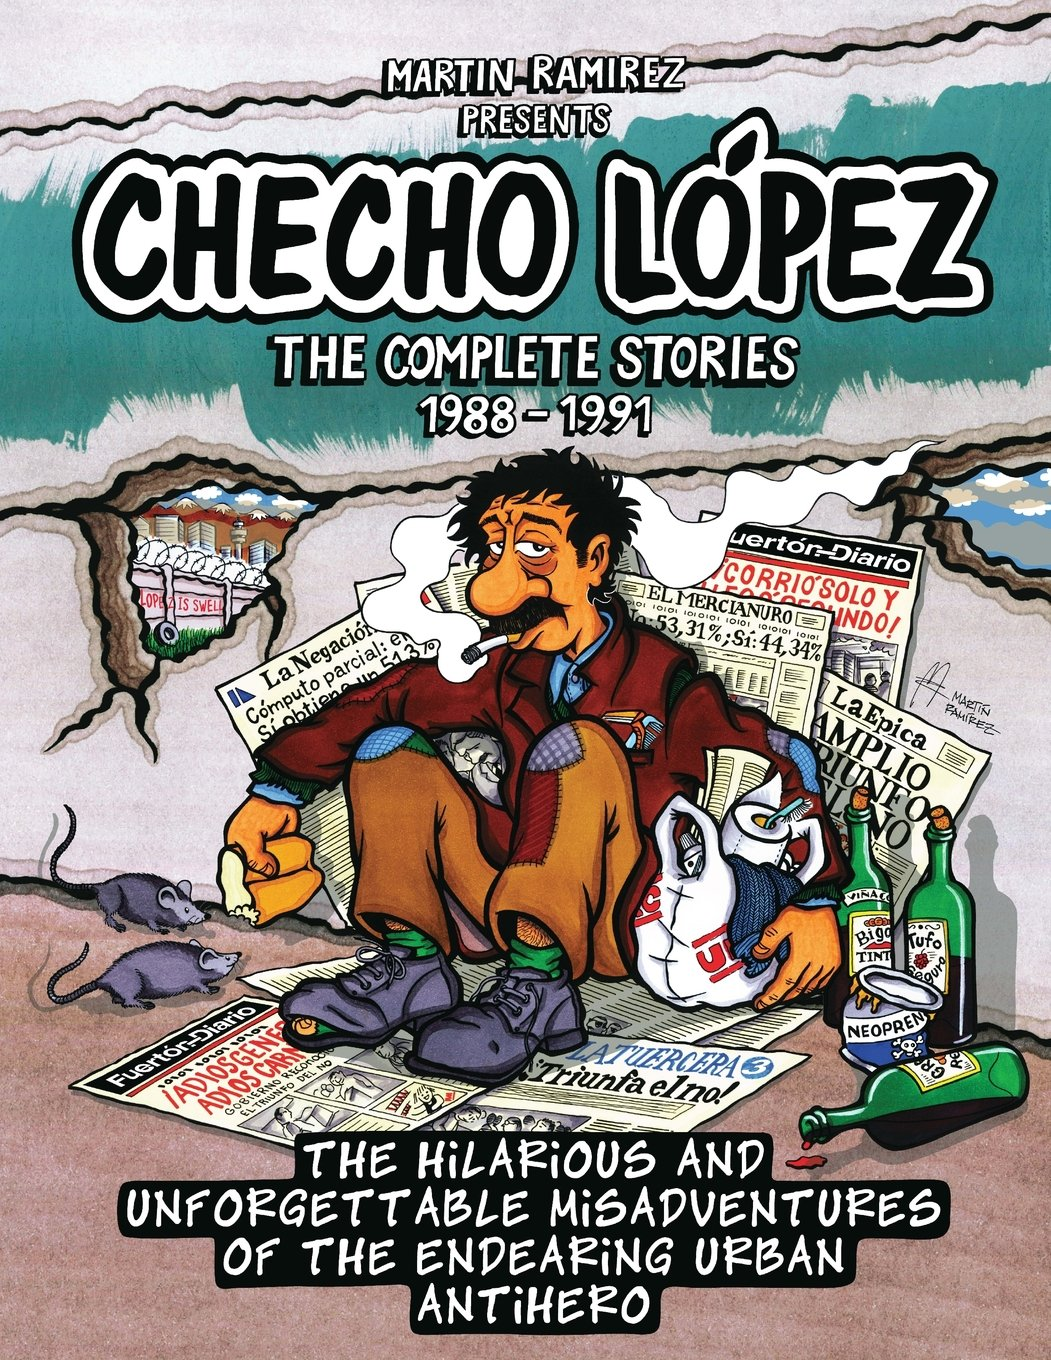 Checho Lopez The Complete Stories 1988 - 1991: The hilarious and unforgettable misadventures of the endearing urban antihero pdf epub